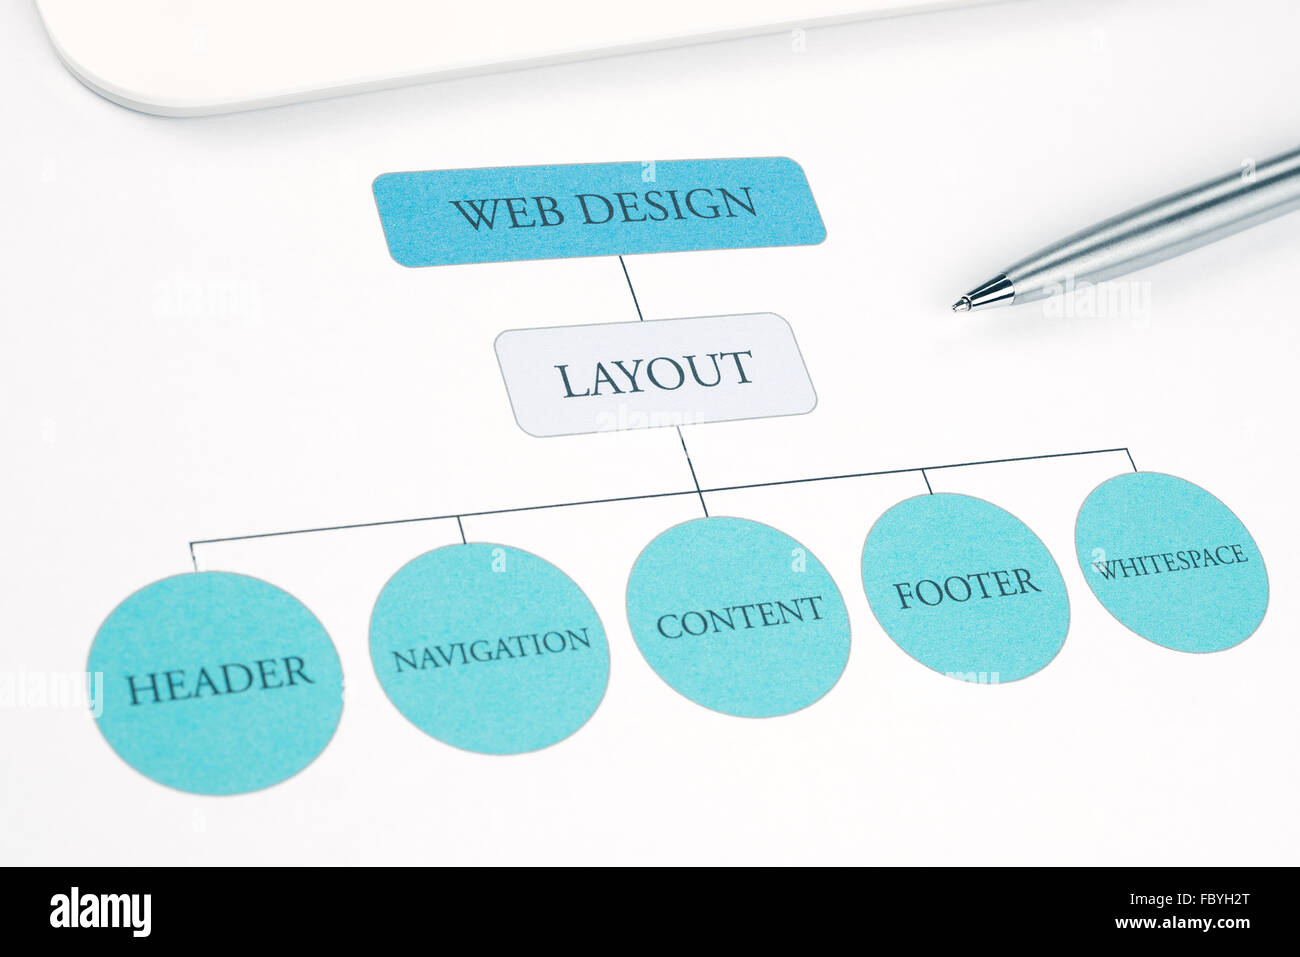 Disposition des composants web design conceptuel organigramme plan de bâtiment. Tablette tactile et stylet Photo Stock